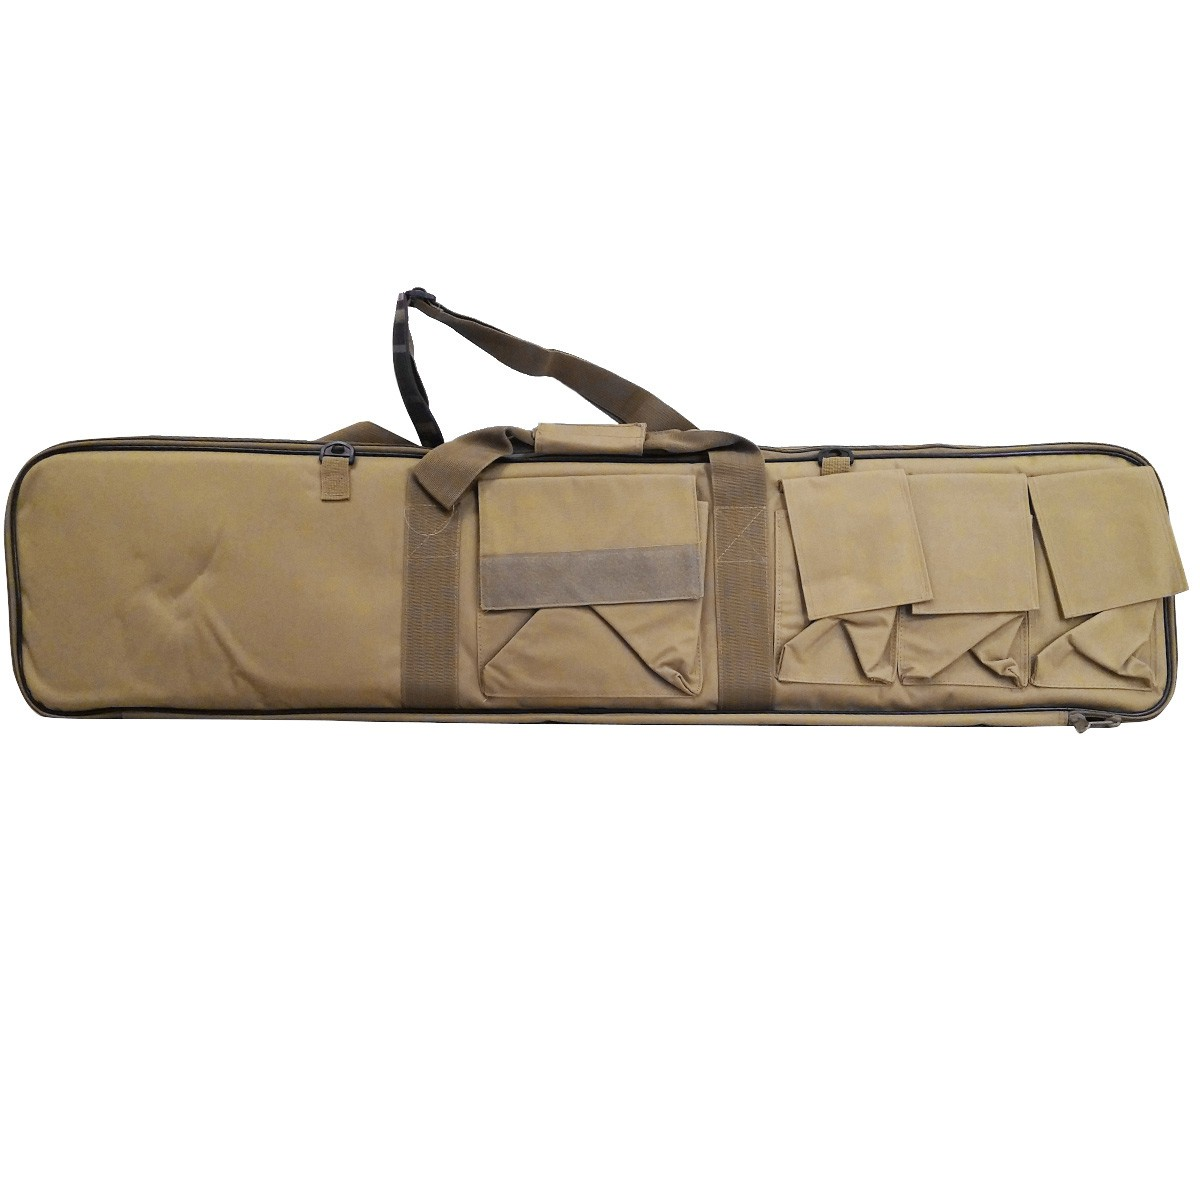 Custodia Fucile 107 cm Morbida Tan Valigetta Borsa per Softair